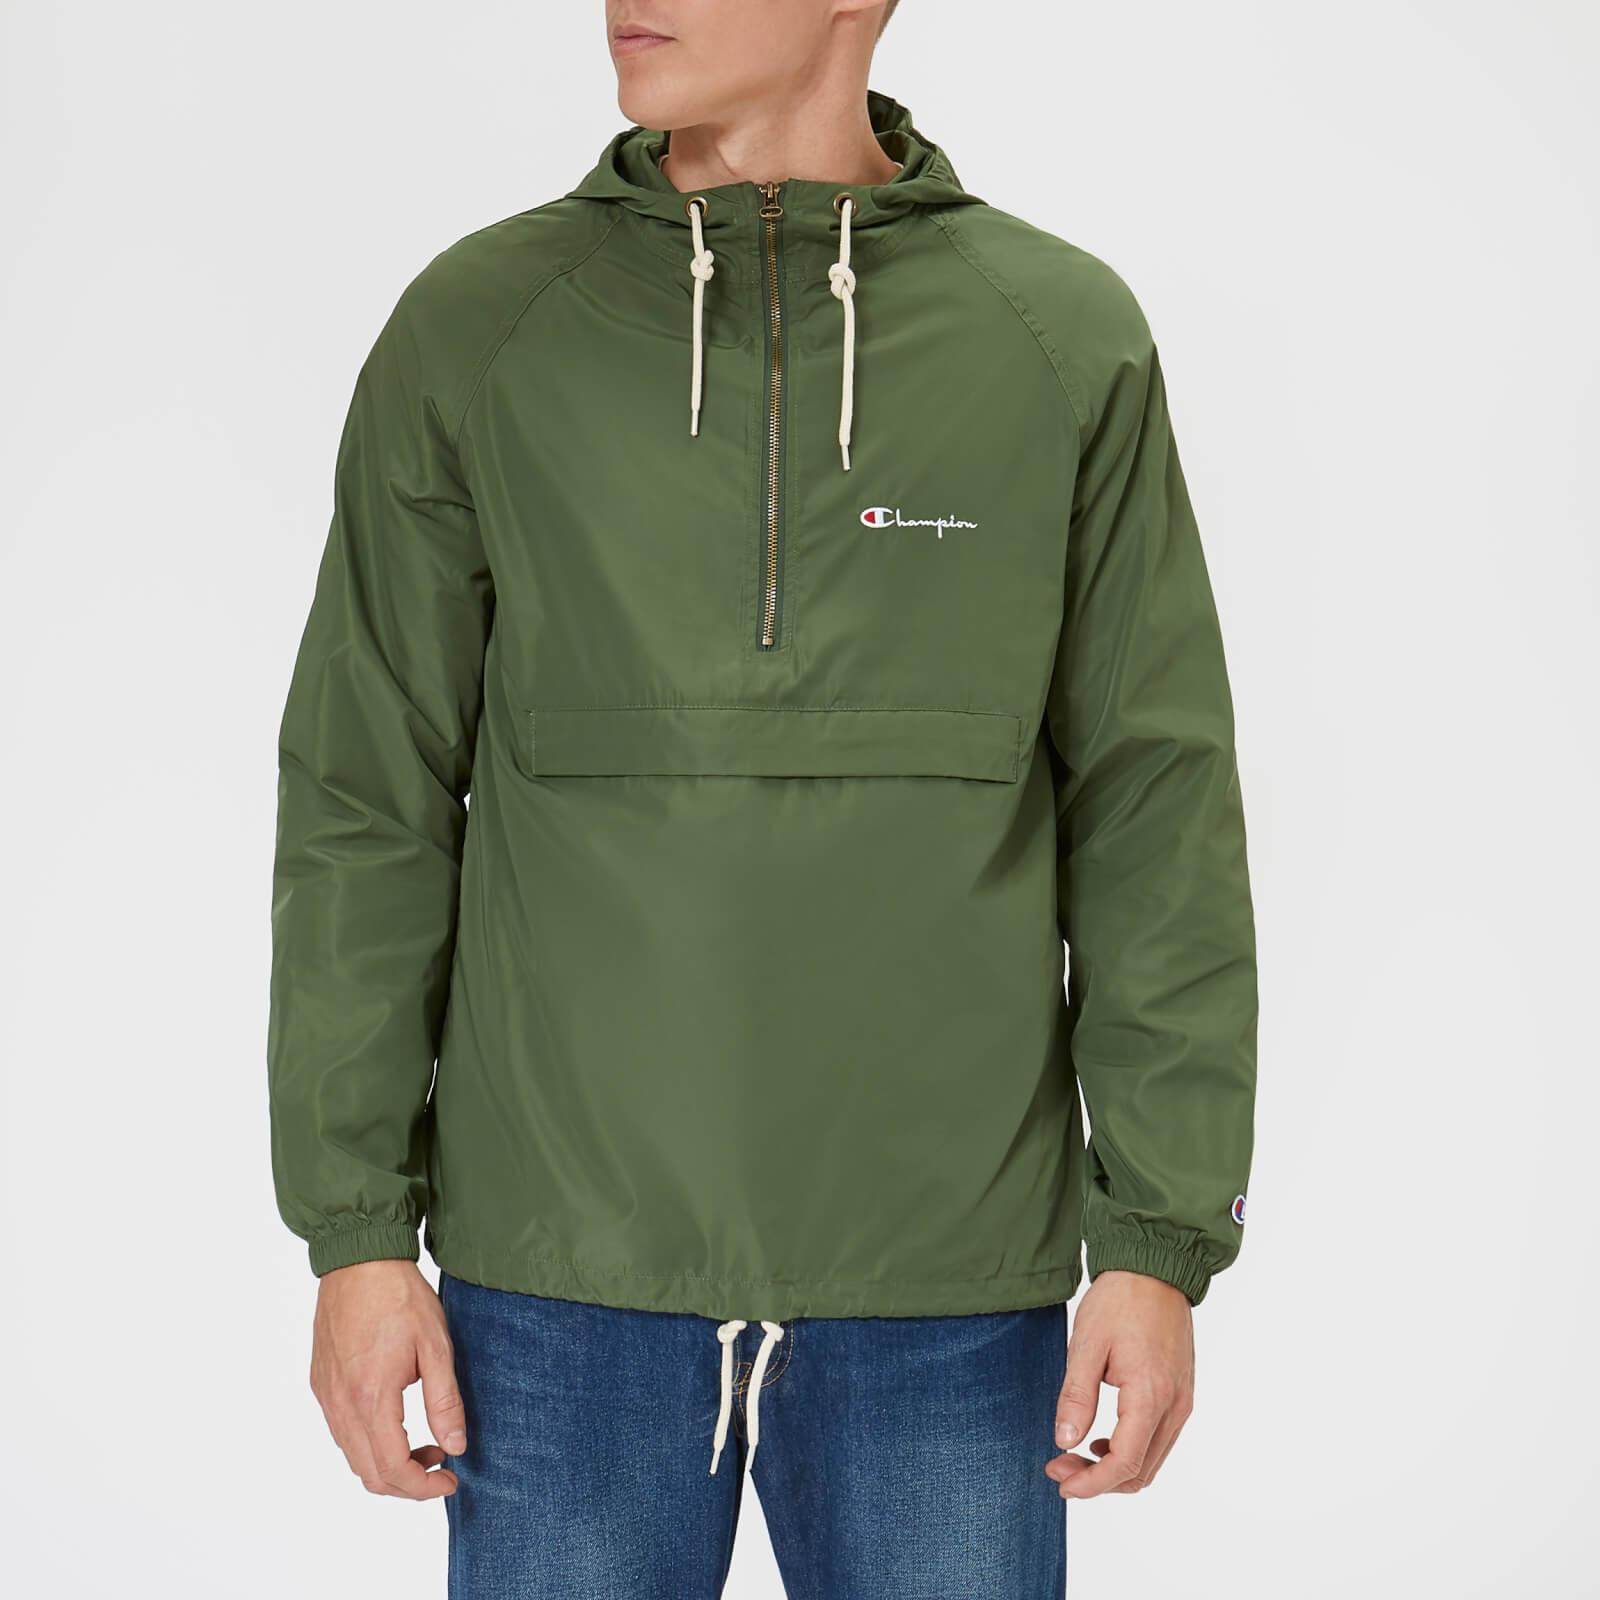 624b65bd1 Lyst - Champion Hooded Jacket in Green for Men